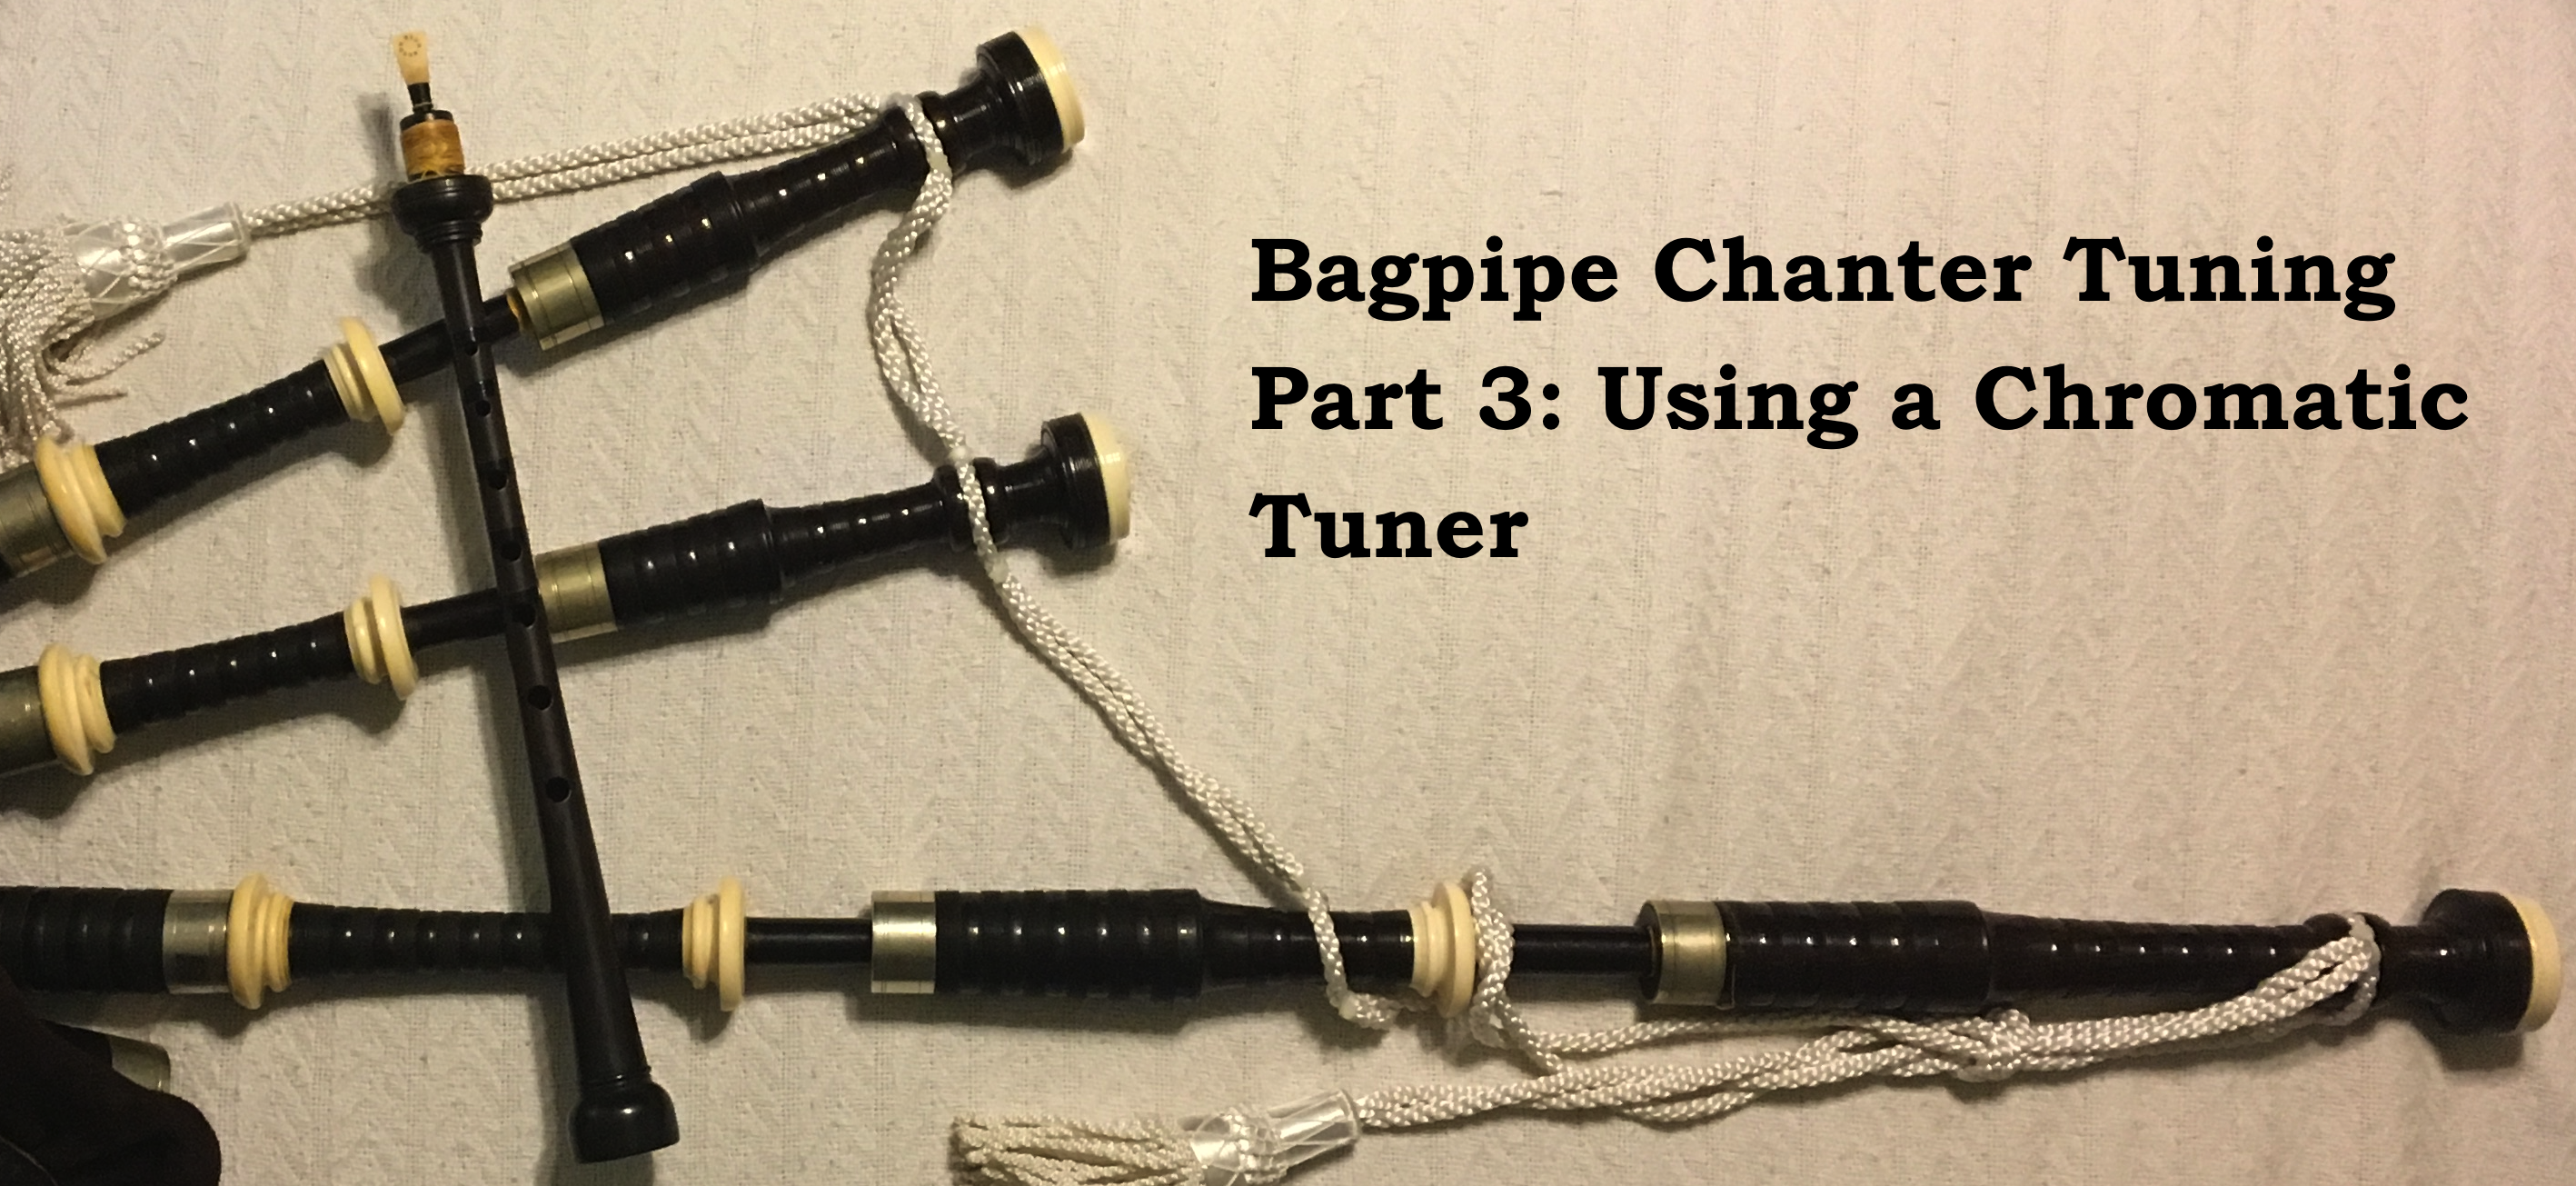 Bagpipe Chanter Tuning—Part 3: Using a Chromatic Tuner